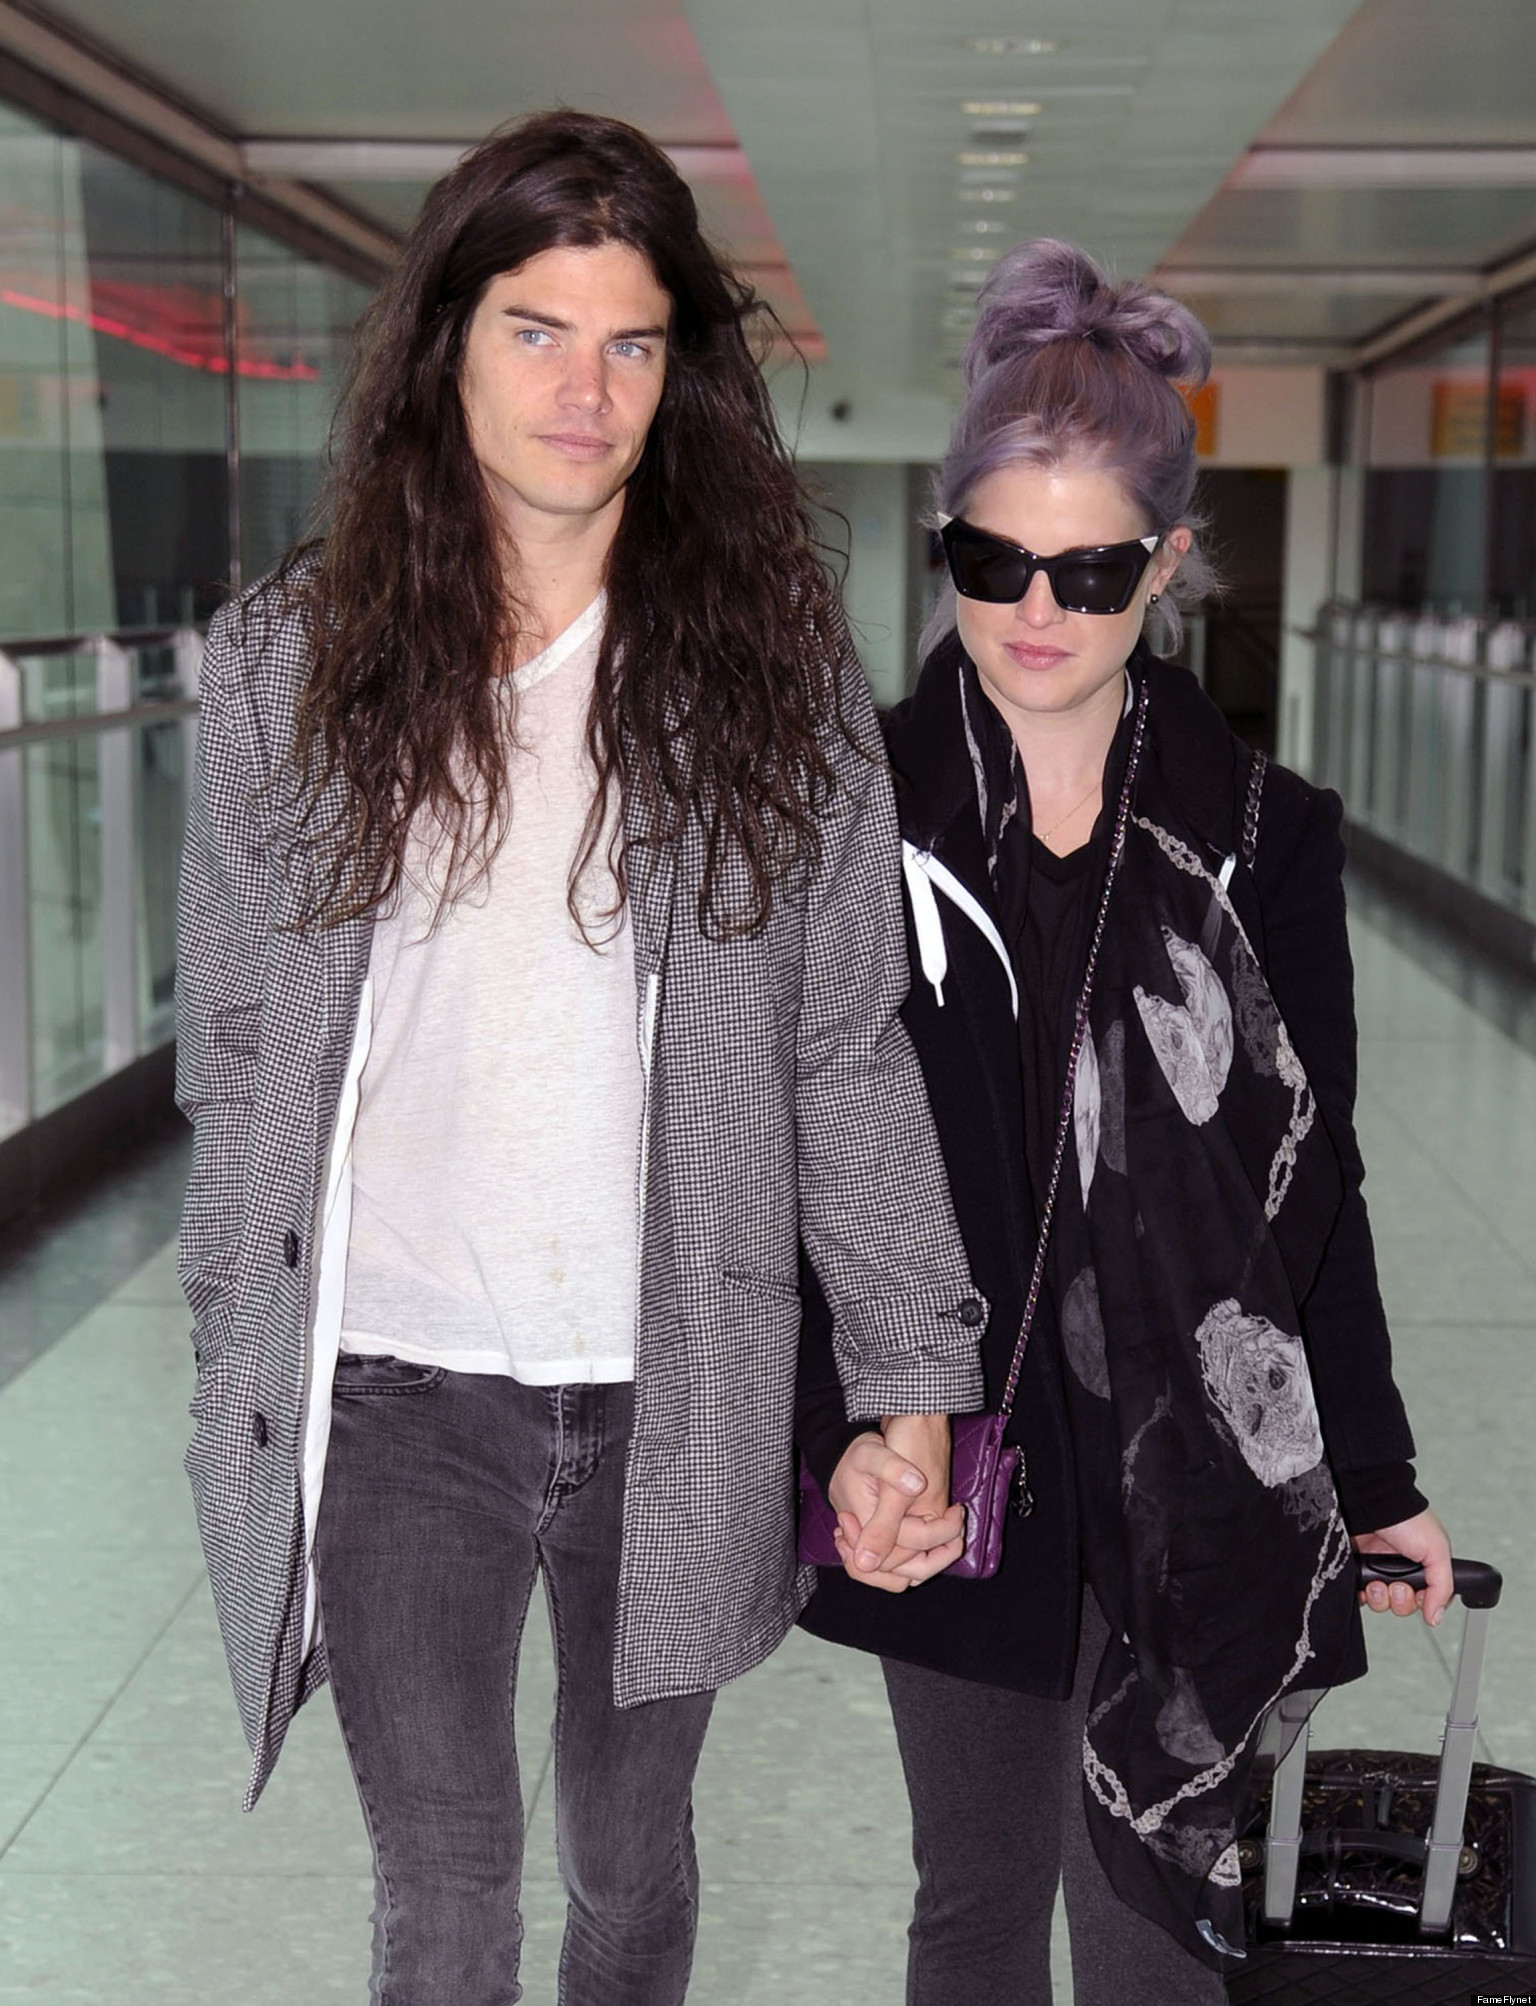 heathrow dating The star trek actor is dating the mummy actress  33, first sparked romance rumors last month when they were spotted together at london's heathrow airport.